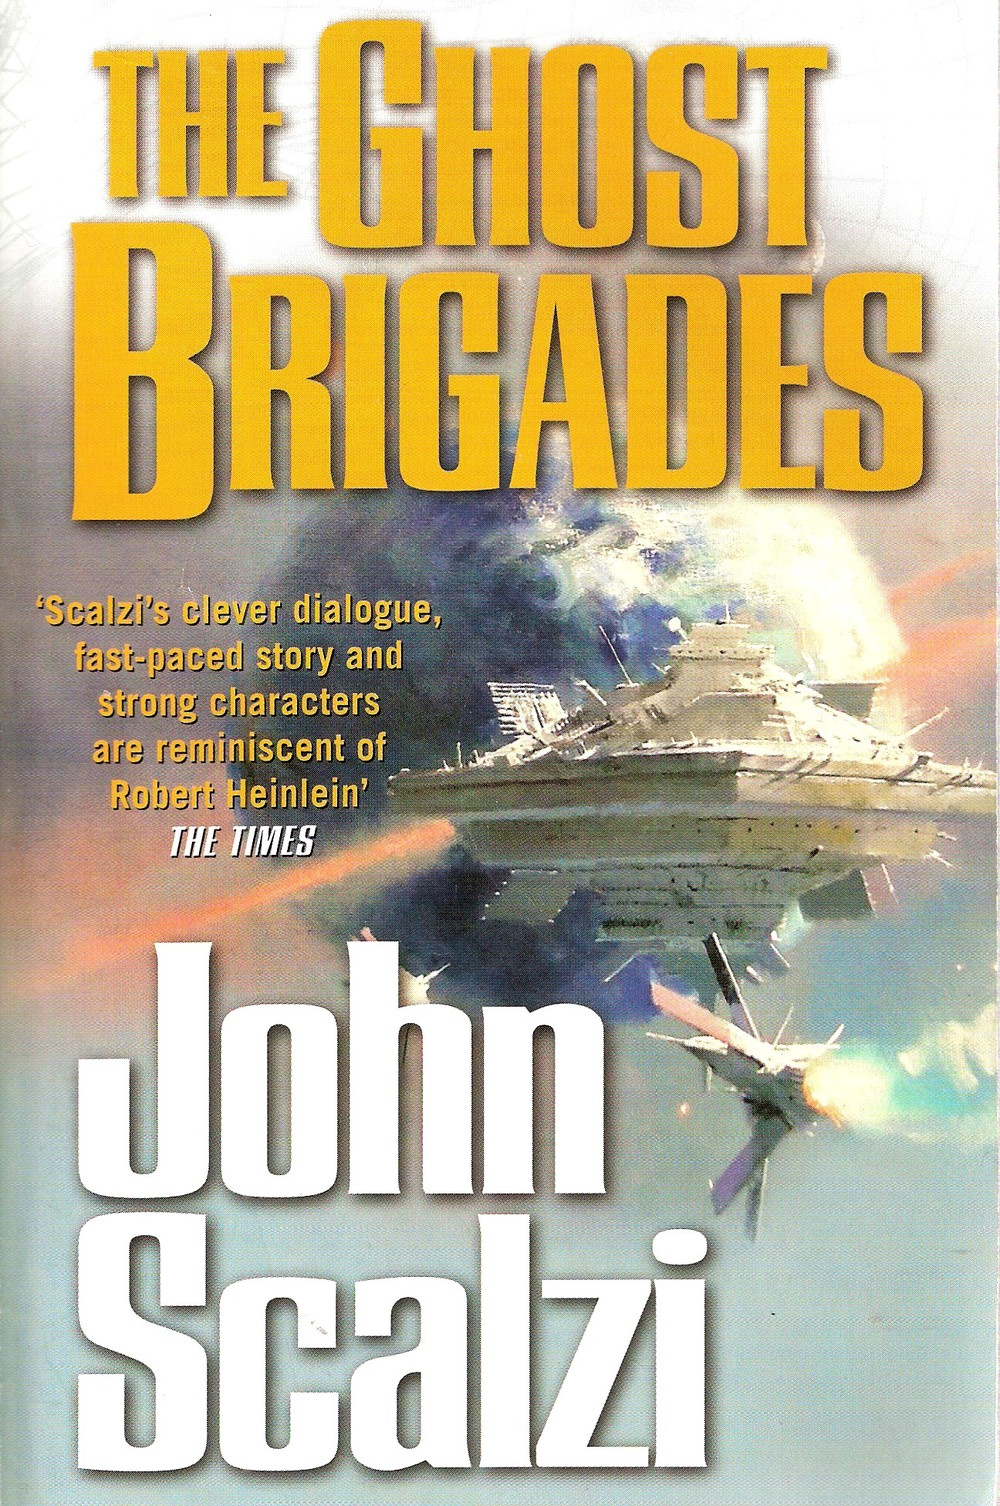 John-Scalzi_2006_The-Ghost-Brigades.jpg